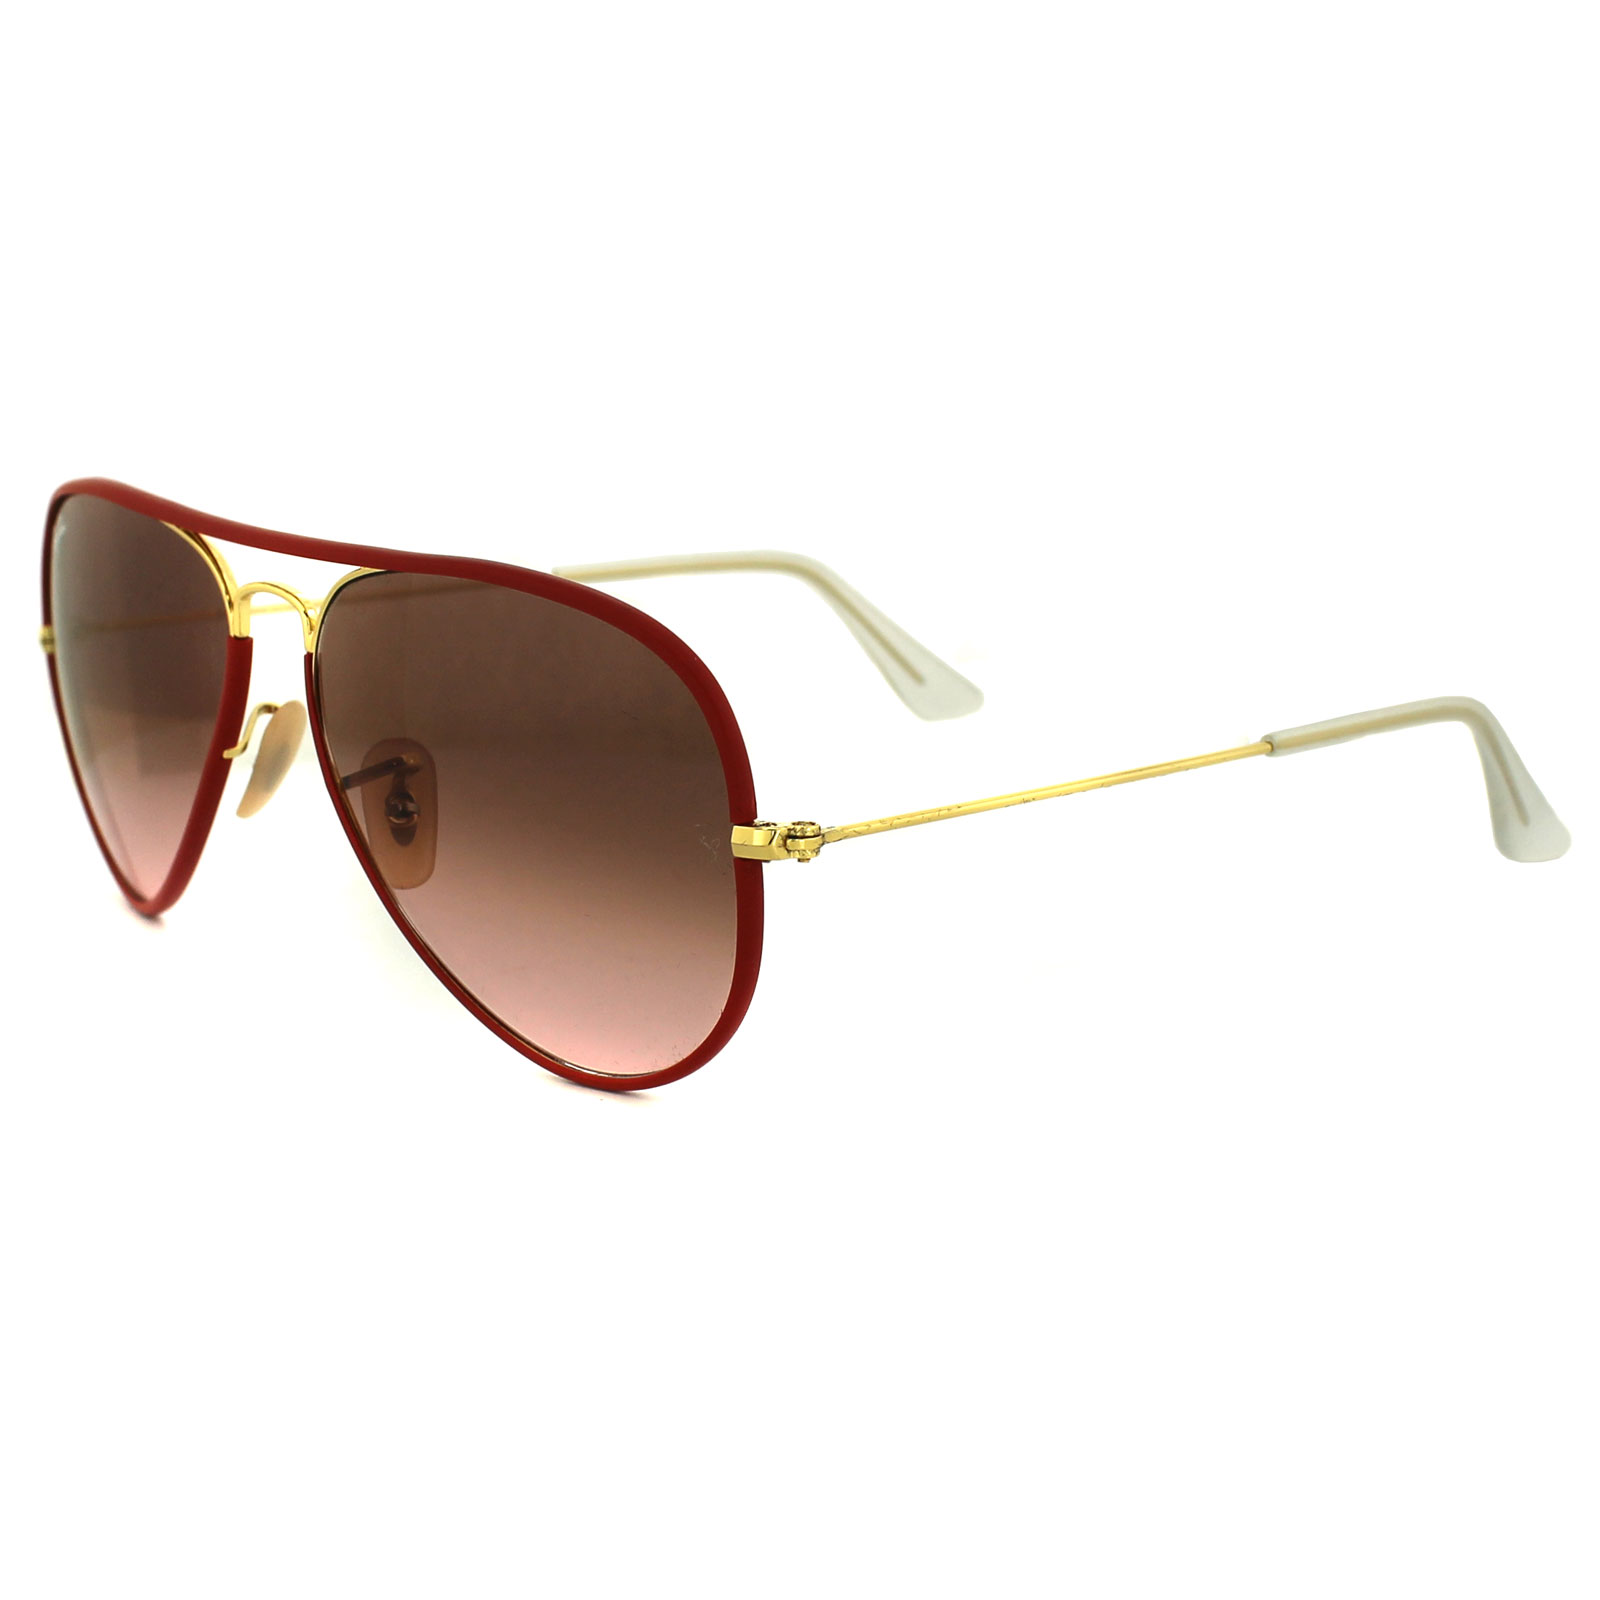 60c0716b8dfb Ray-Ban Sunglasses Aviator Full Colour 3025JM 001 X3 Gold   Red Pink Brown